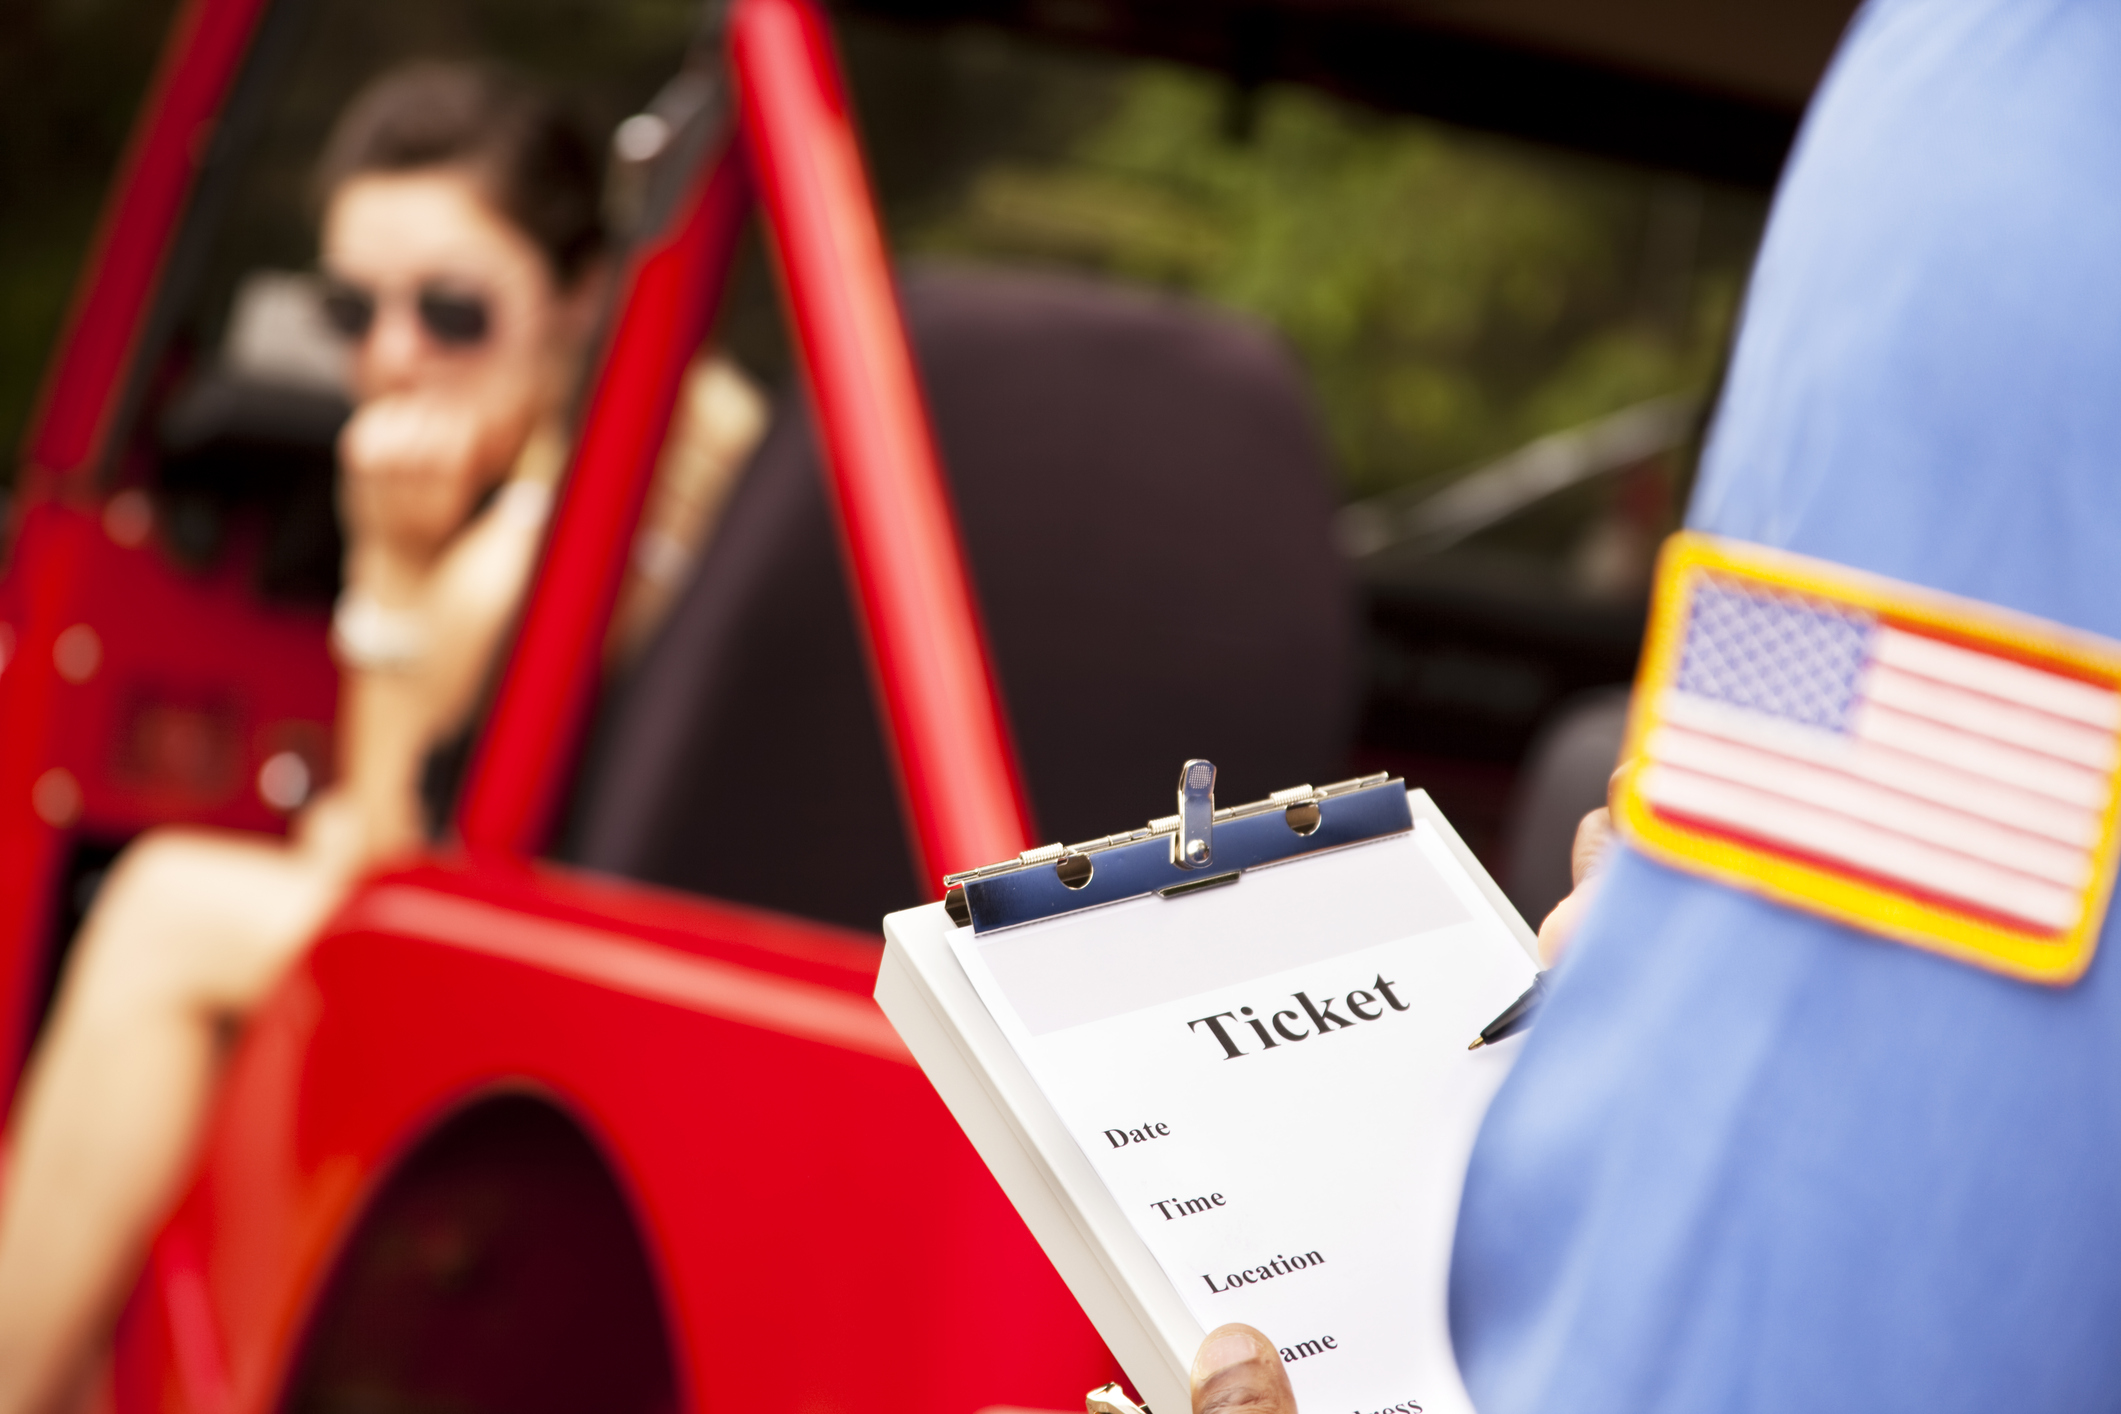 Caucasian female in red vehicle getting a ticket from policeman